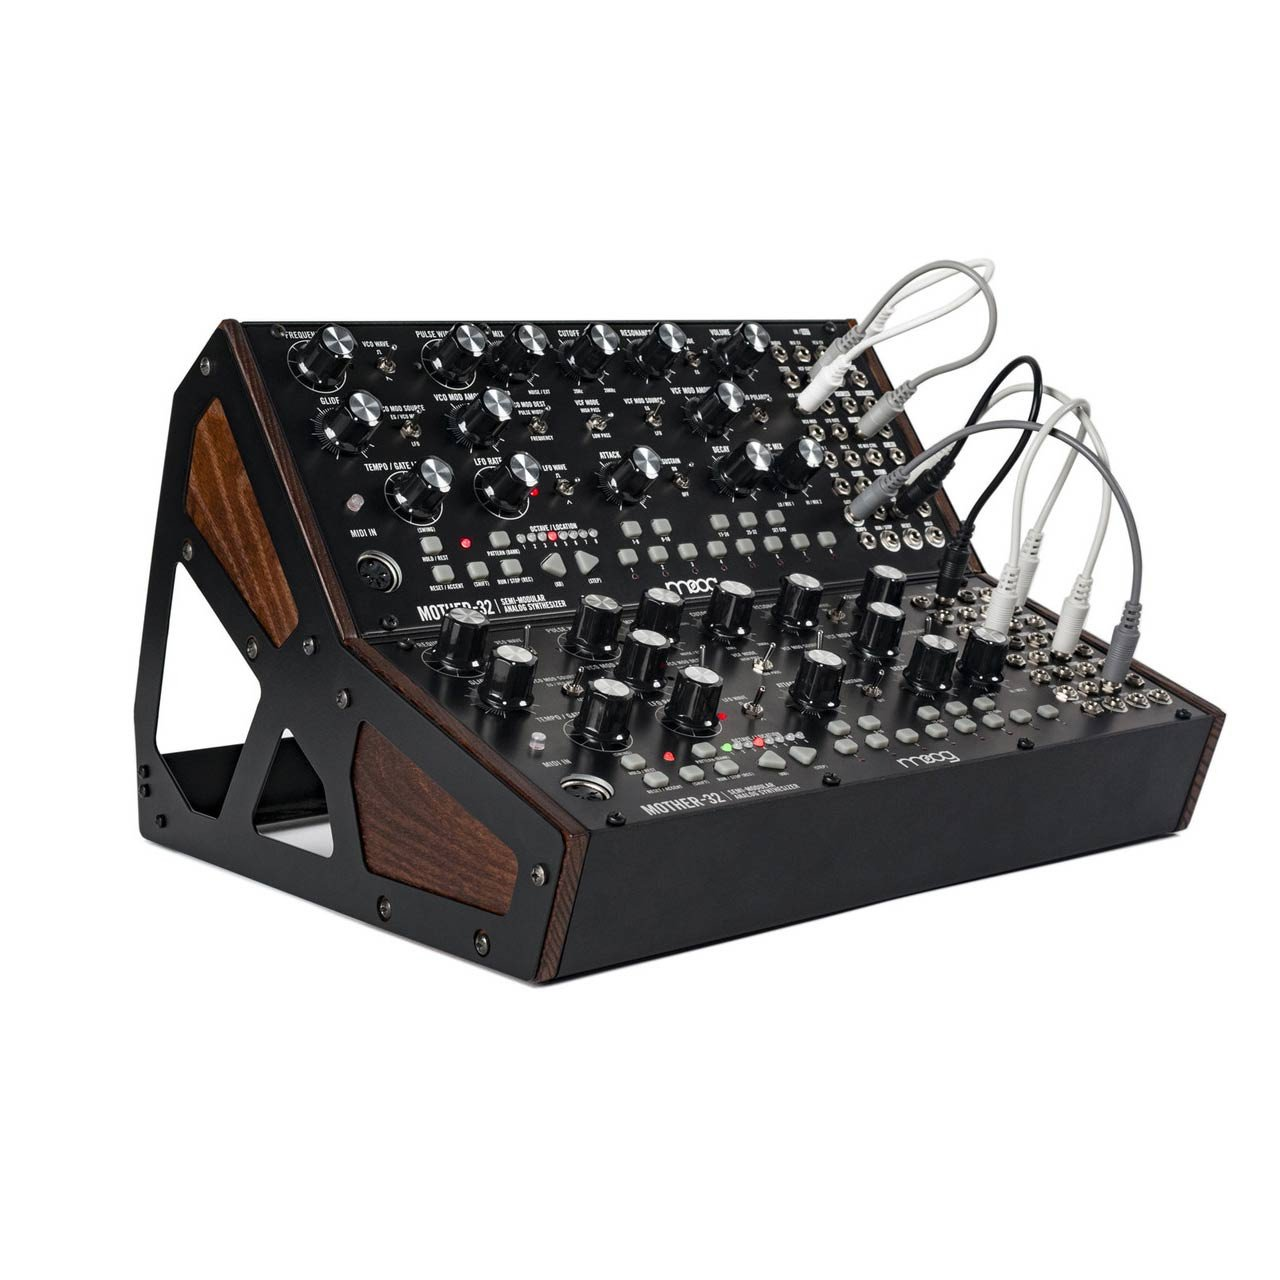 Desktop Synthesizers - Moog Mother 32 Two Tier Rack Kit